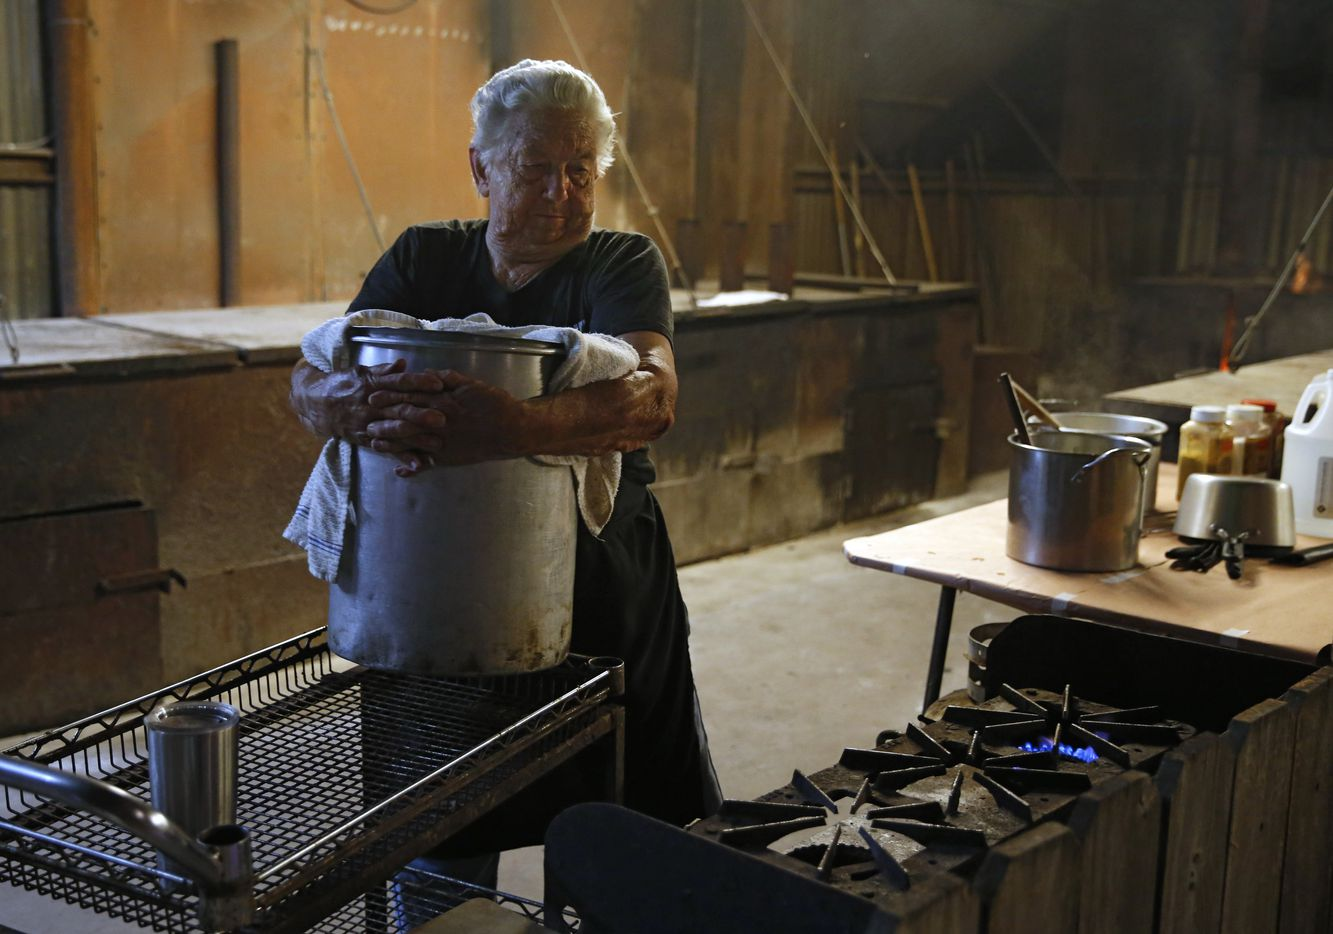 Tootsie Tomanetz lifts a large pot of water and beans to a gas burner.